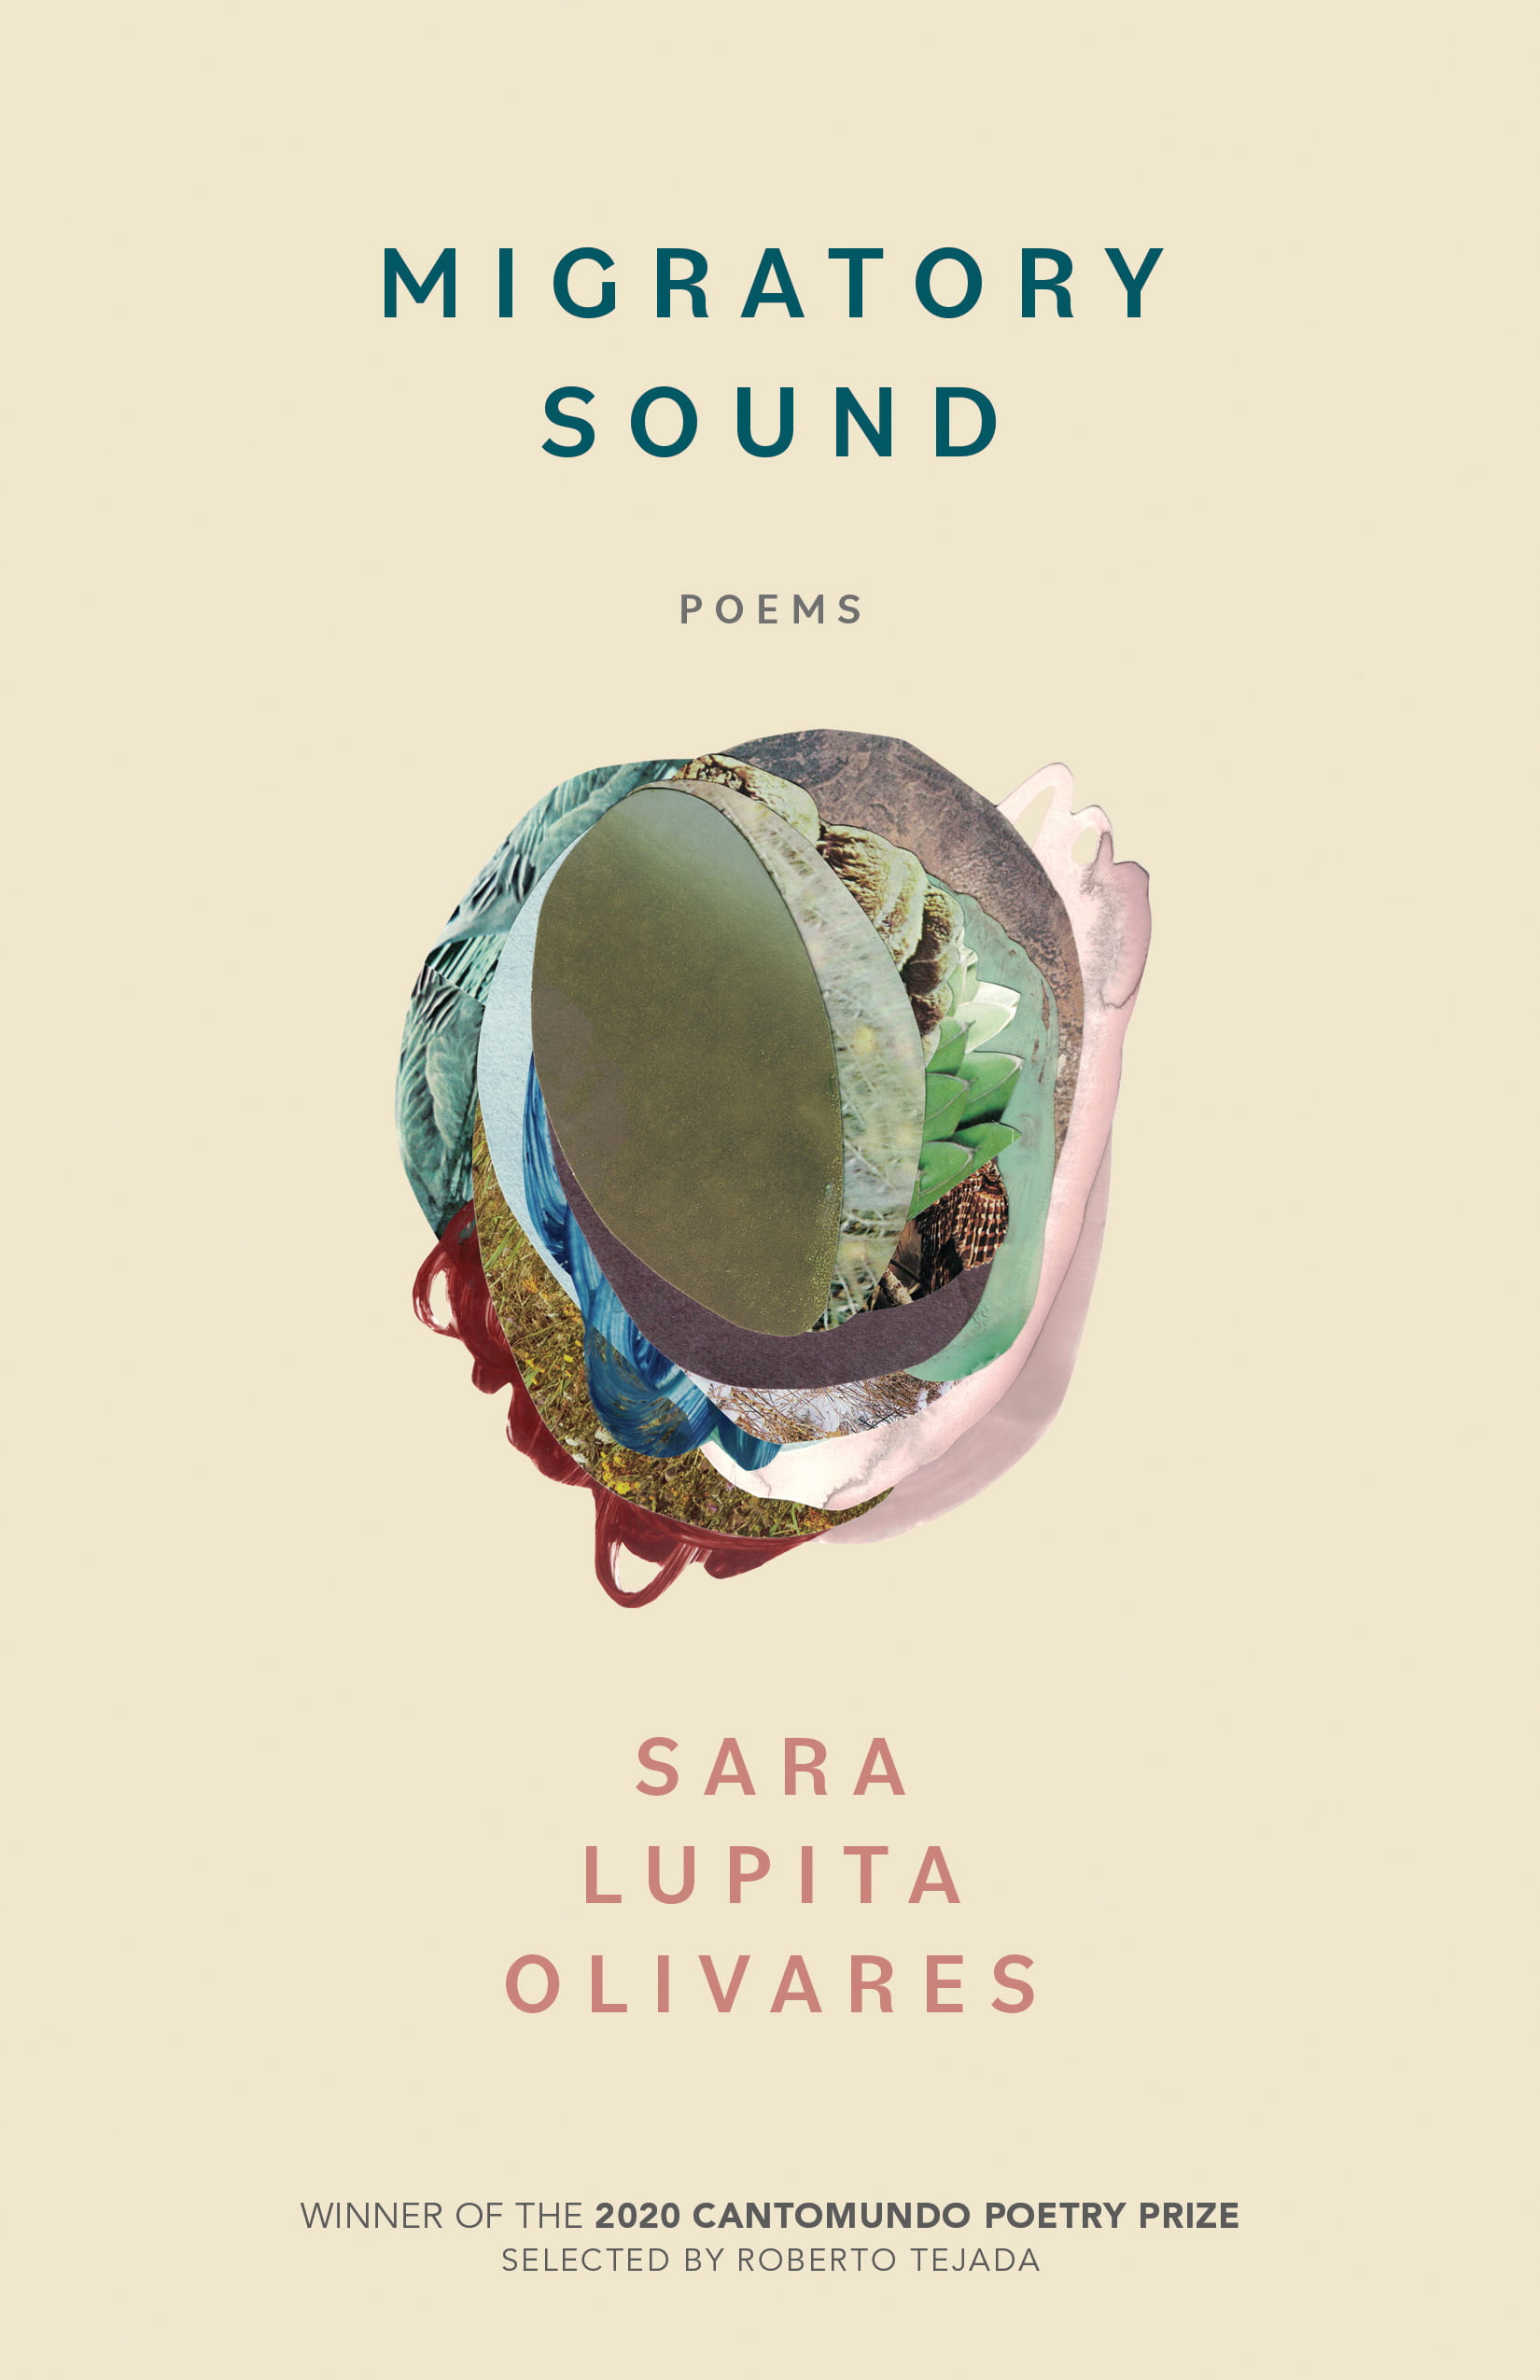 cover image for Migratory Sound